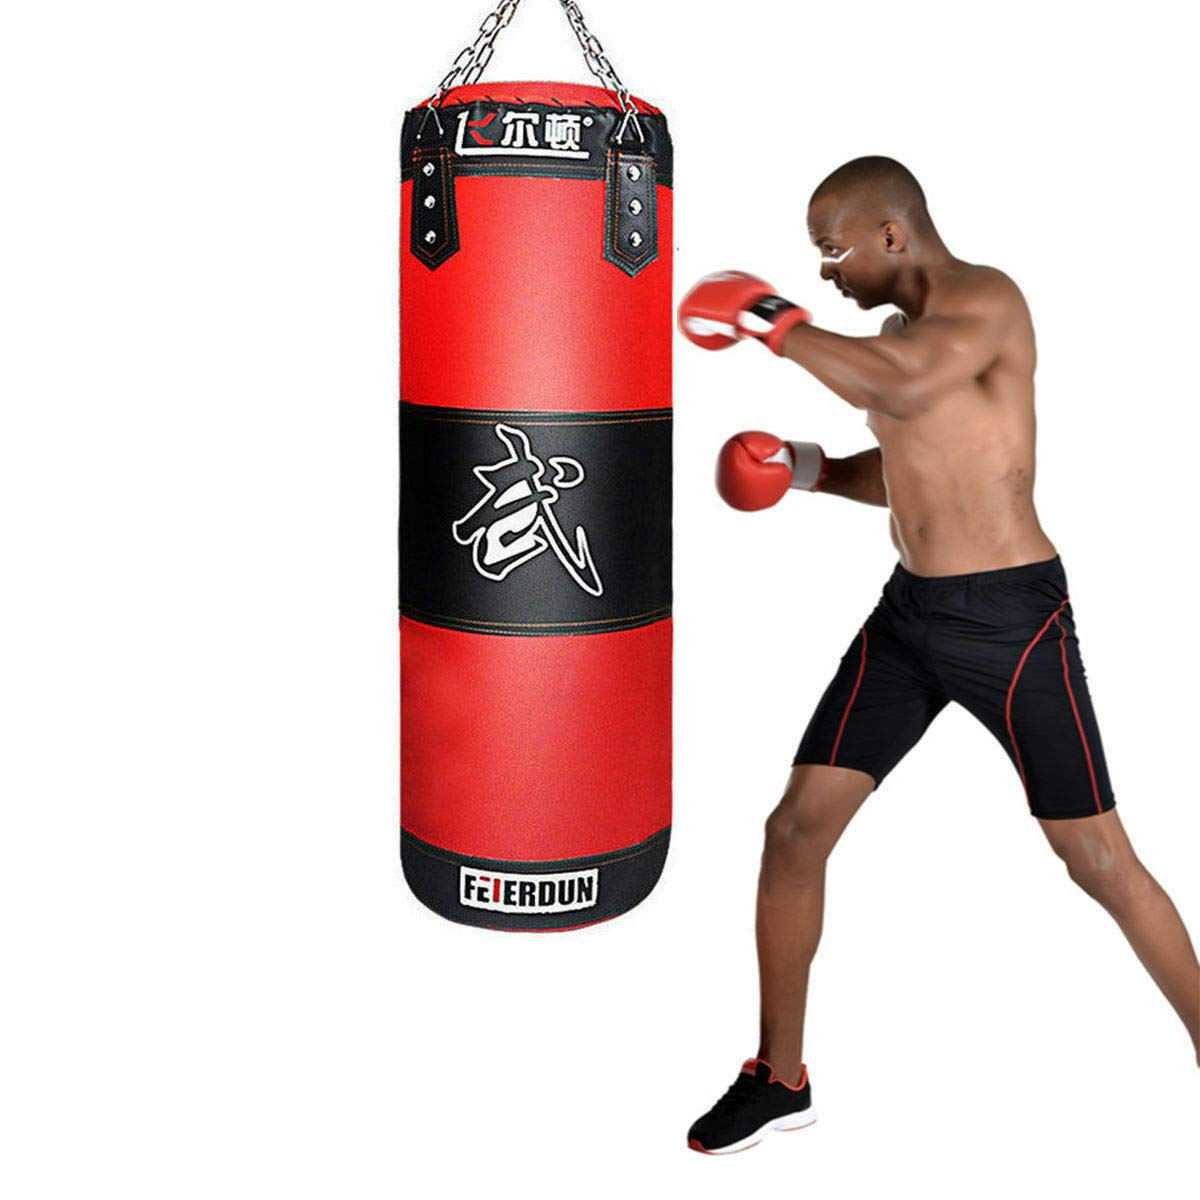 Honeybeloved Bag Training Gloves Speed Set Kicking MMA Workout Empty US Heavy Boxing Punching Red&Black Heavy Bag by Honeybeloved